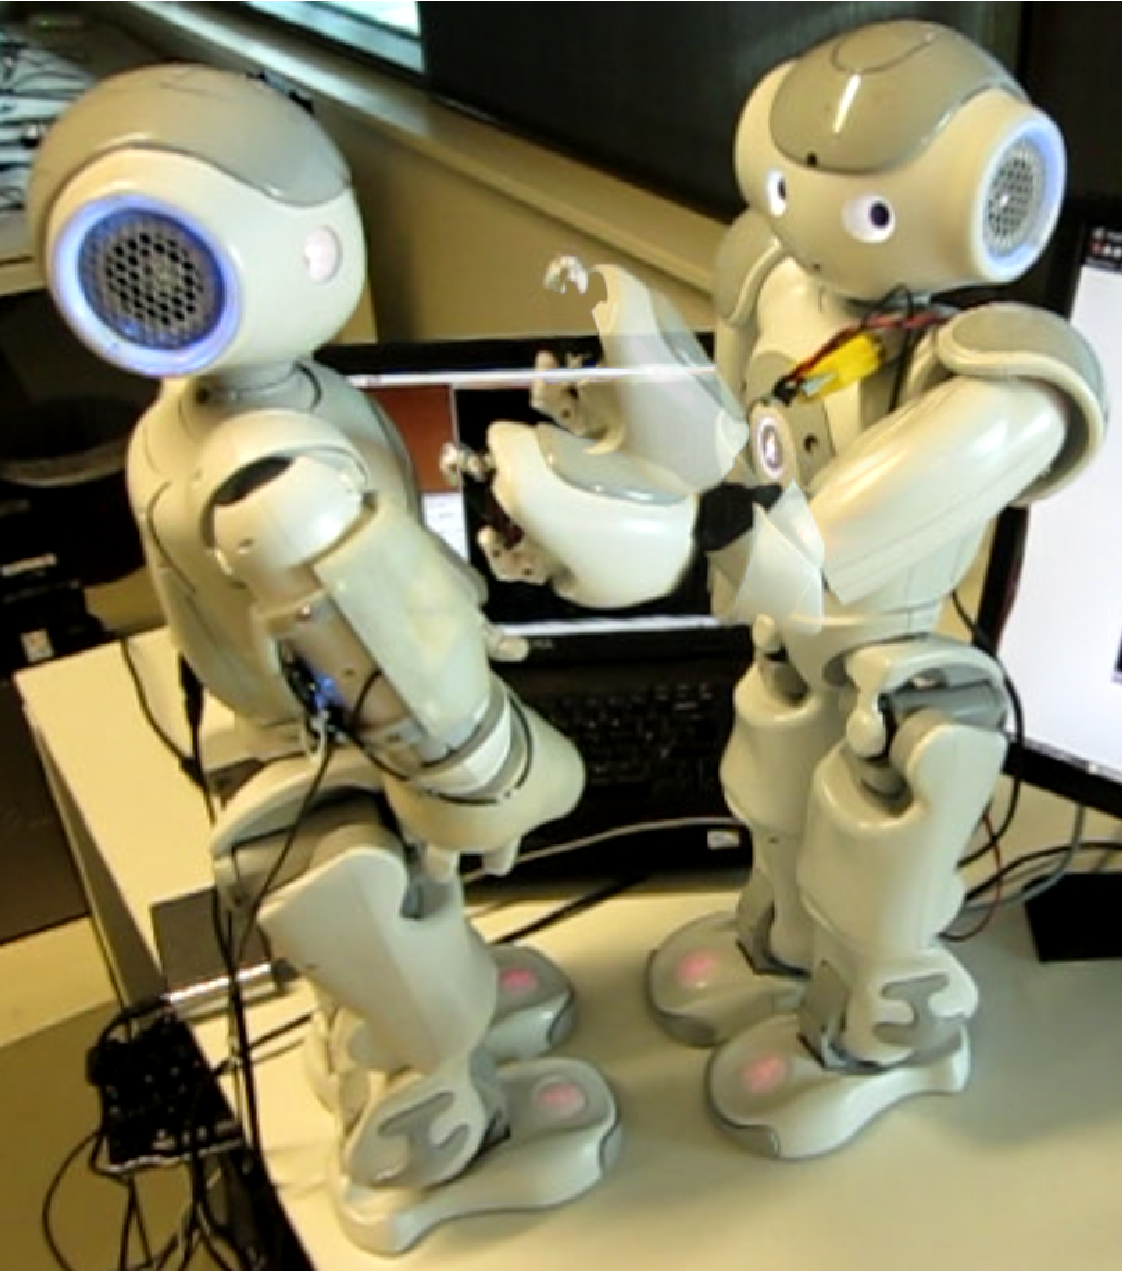 A Nao equipped with a tactile sensitive fingertip performing a stroke on another tactile sensitive Nao